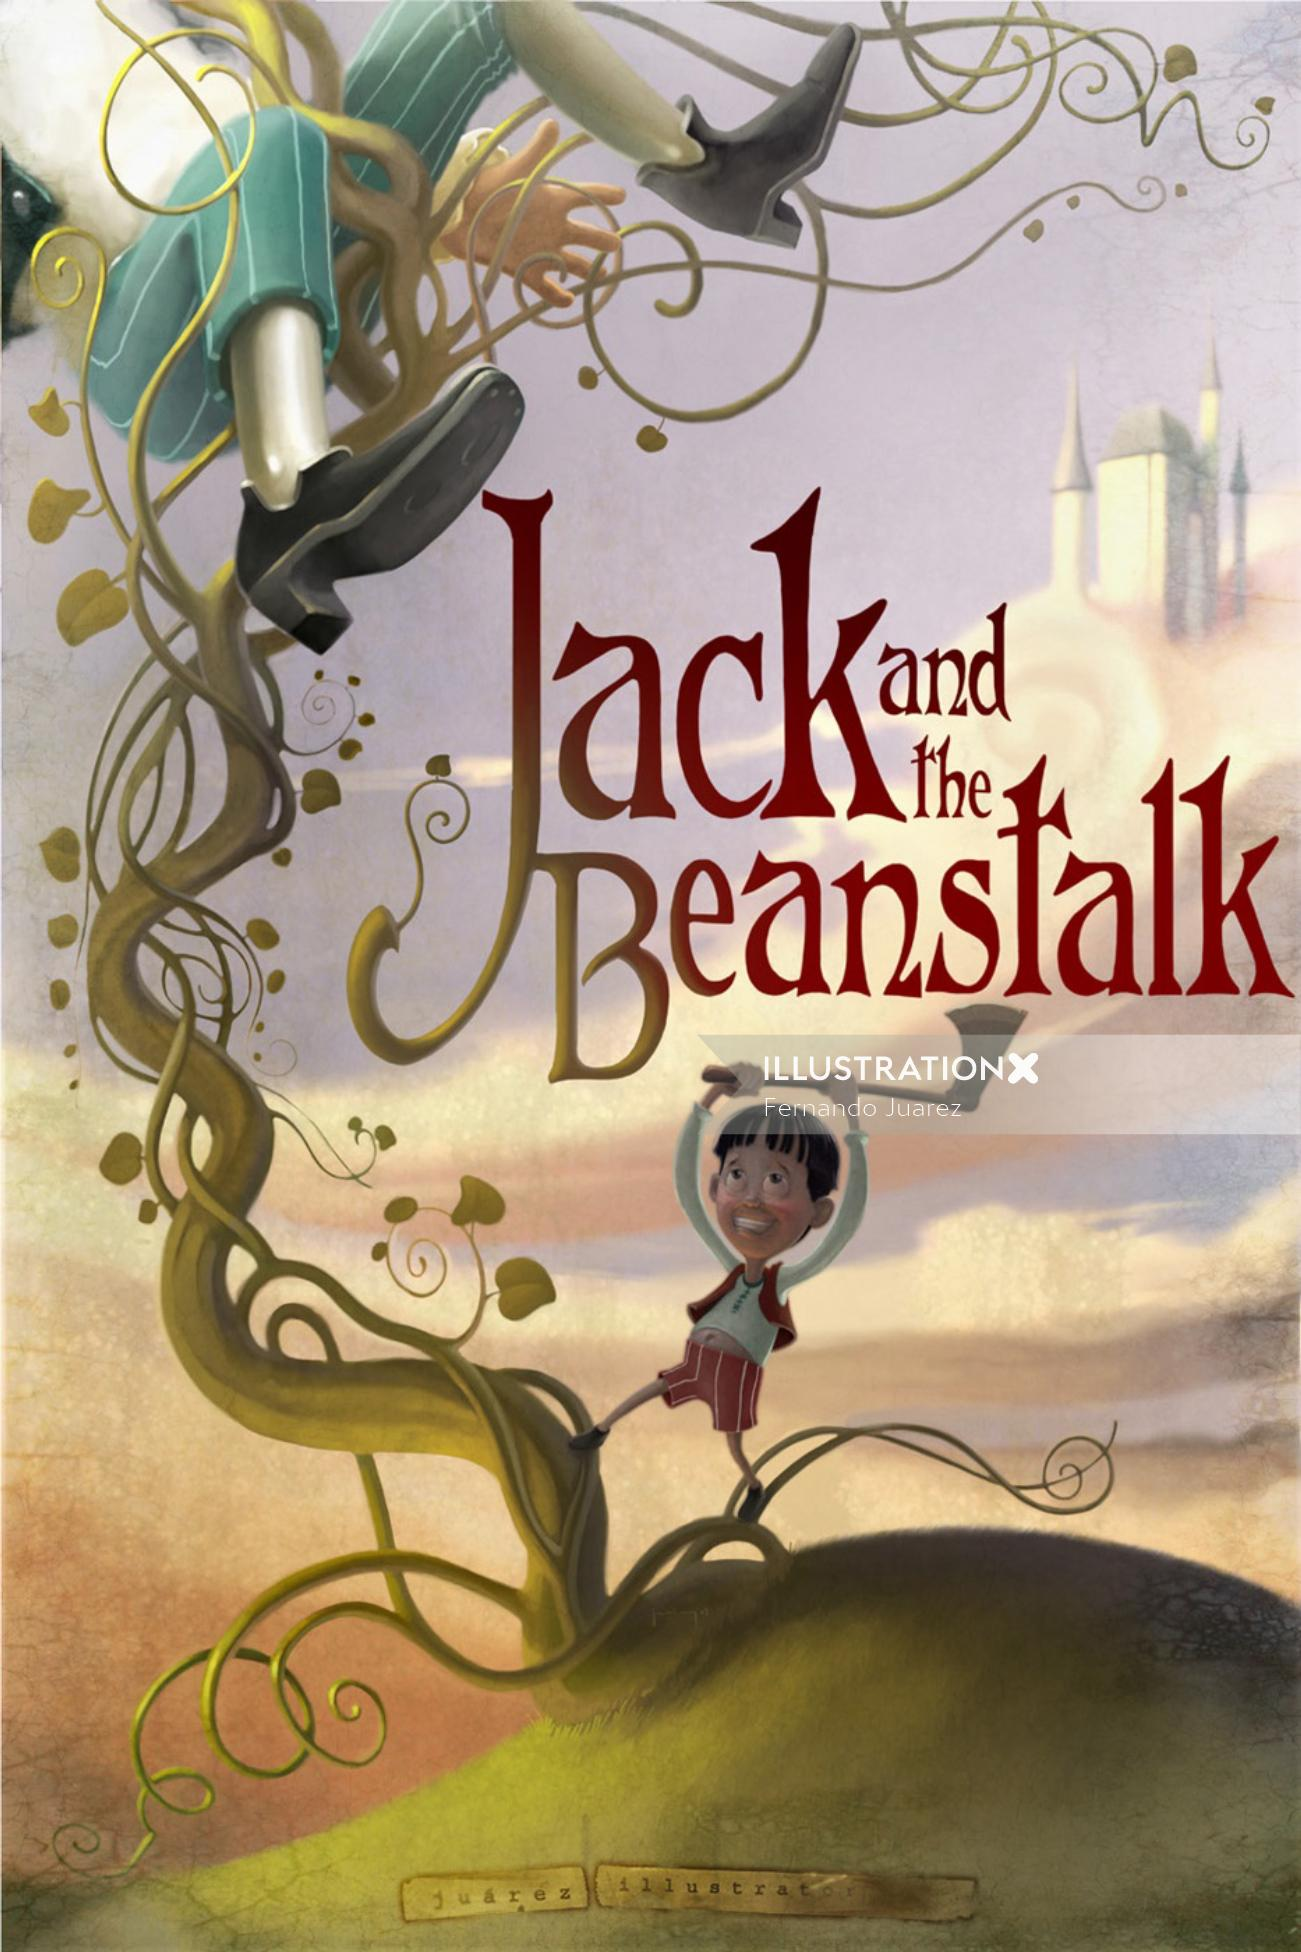 Graphic jack and the beanstalk poster